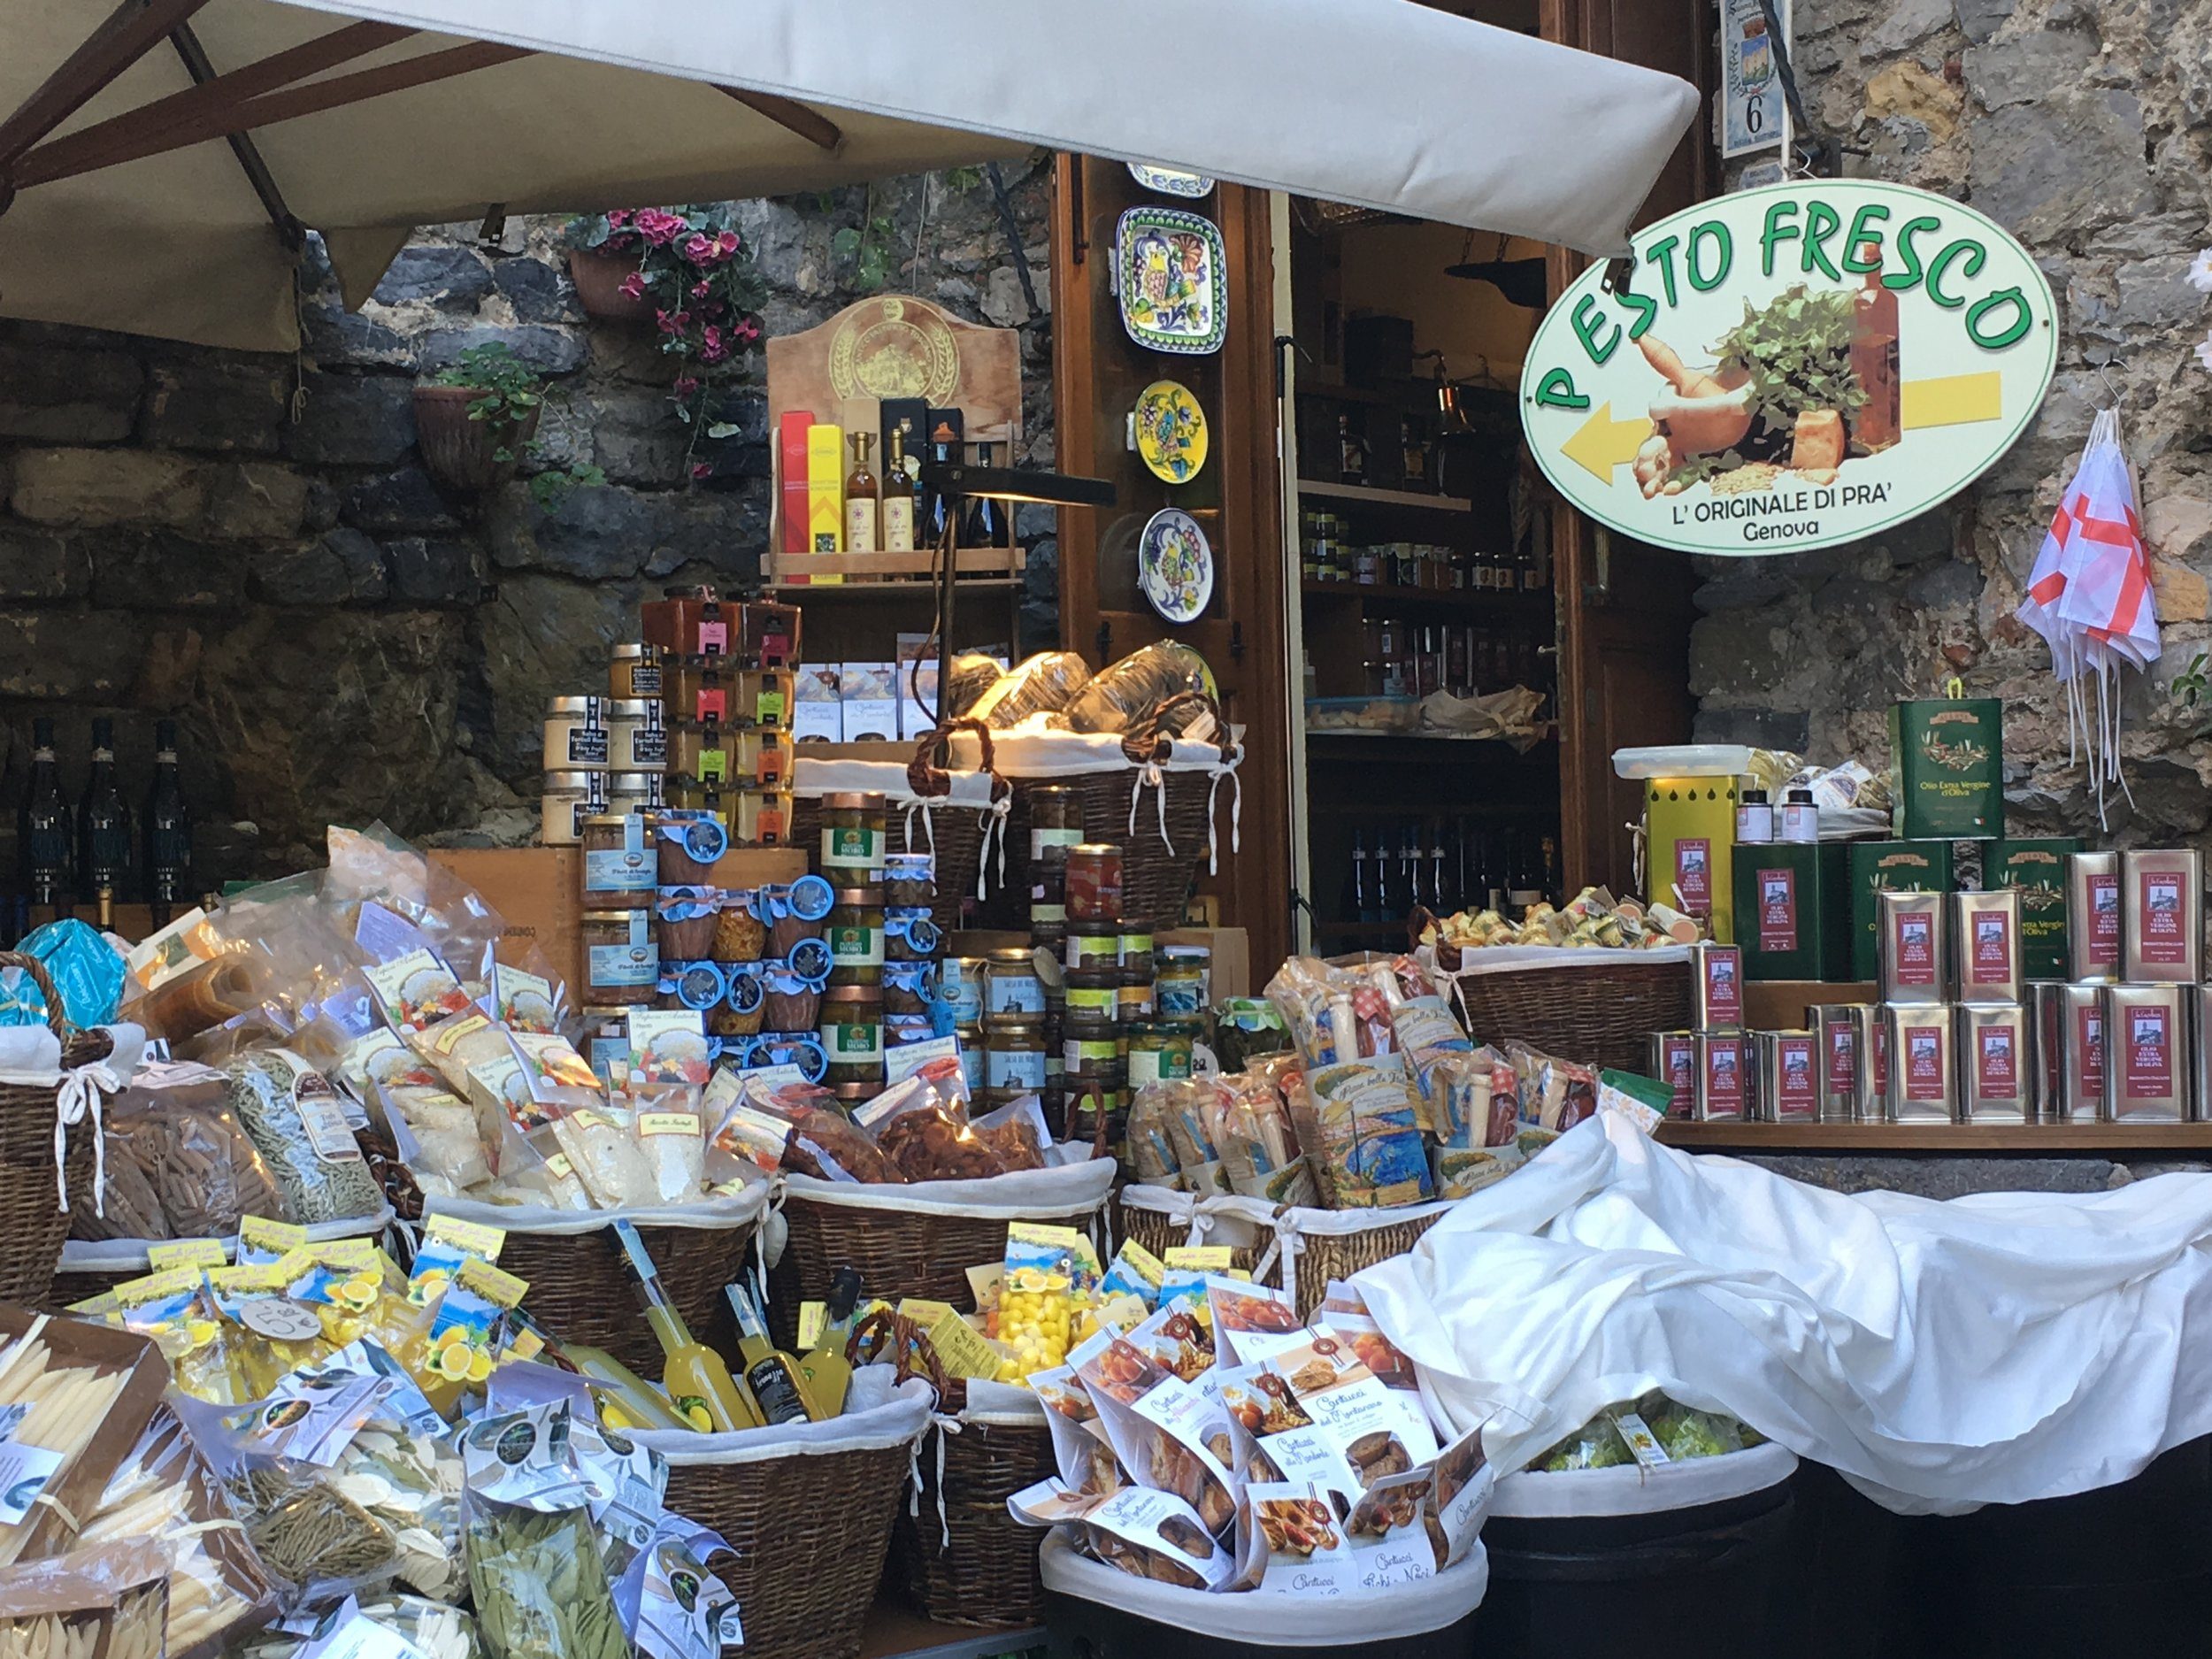 A market in Porto Venere, Liguria, selling pesto and trofie along with other local specialties